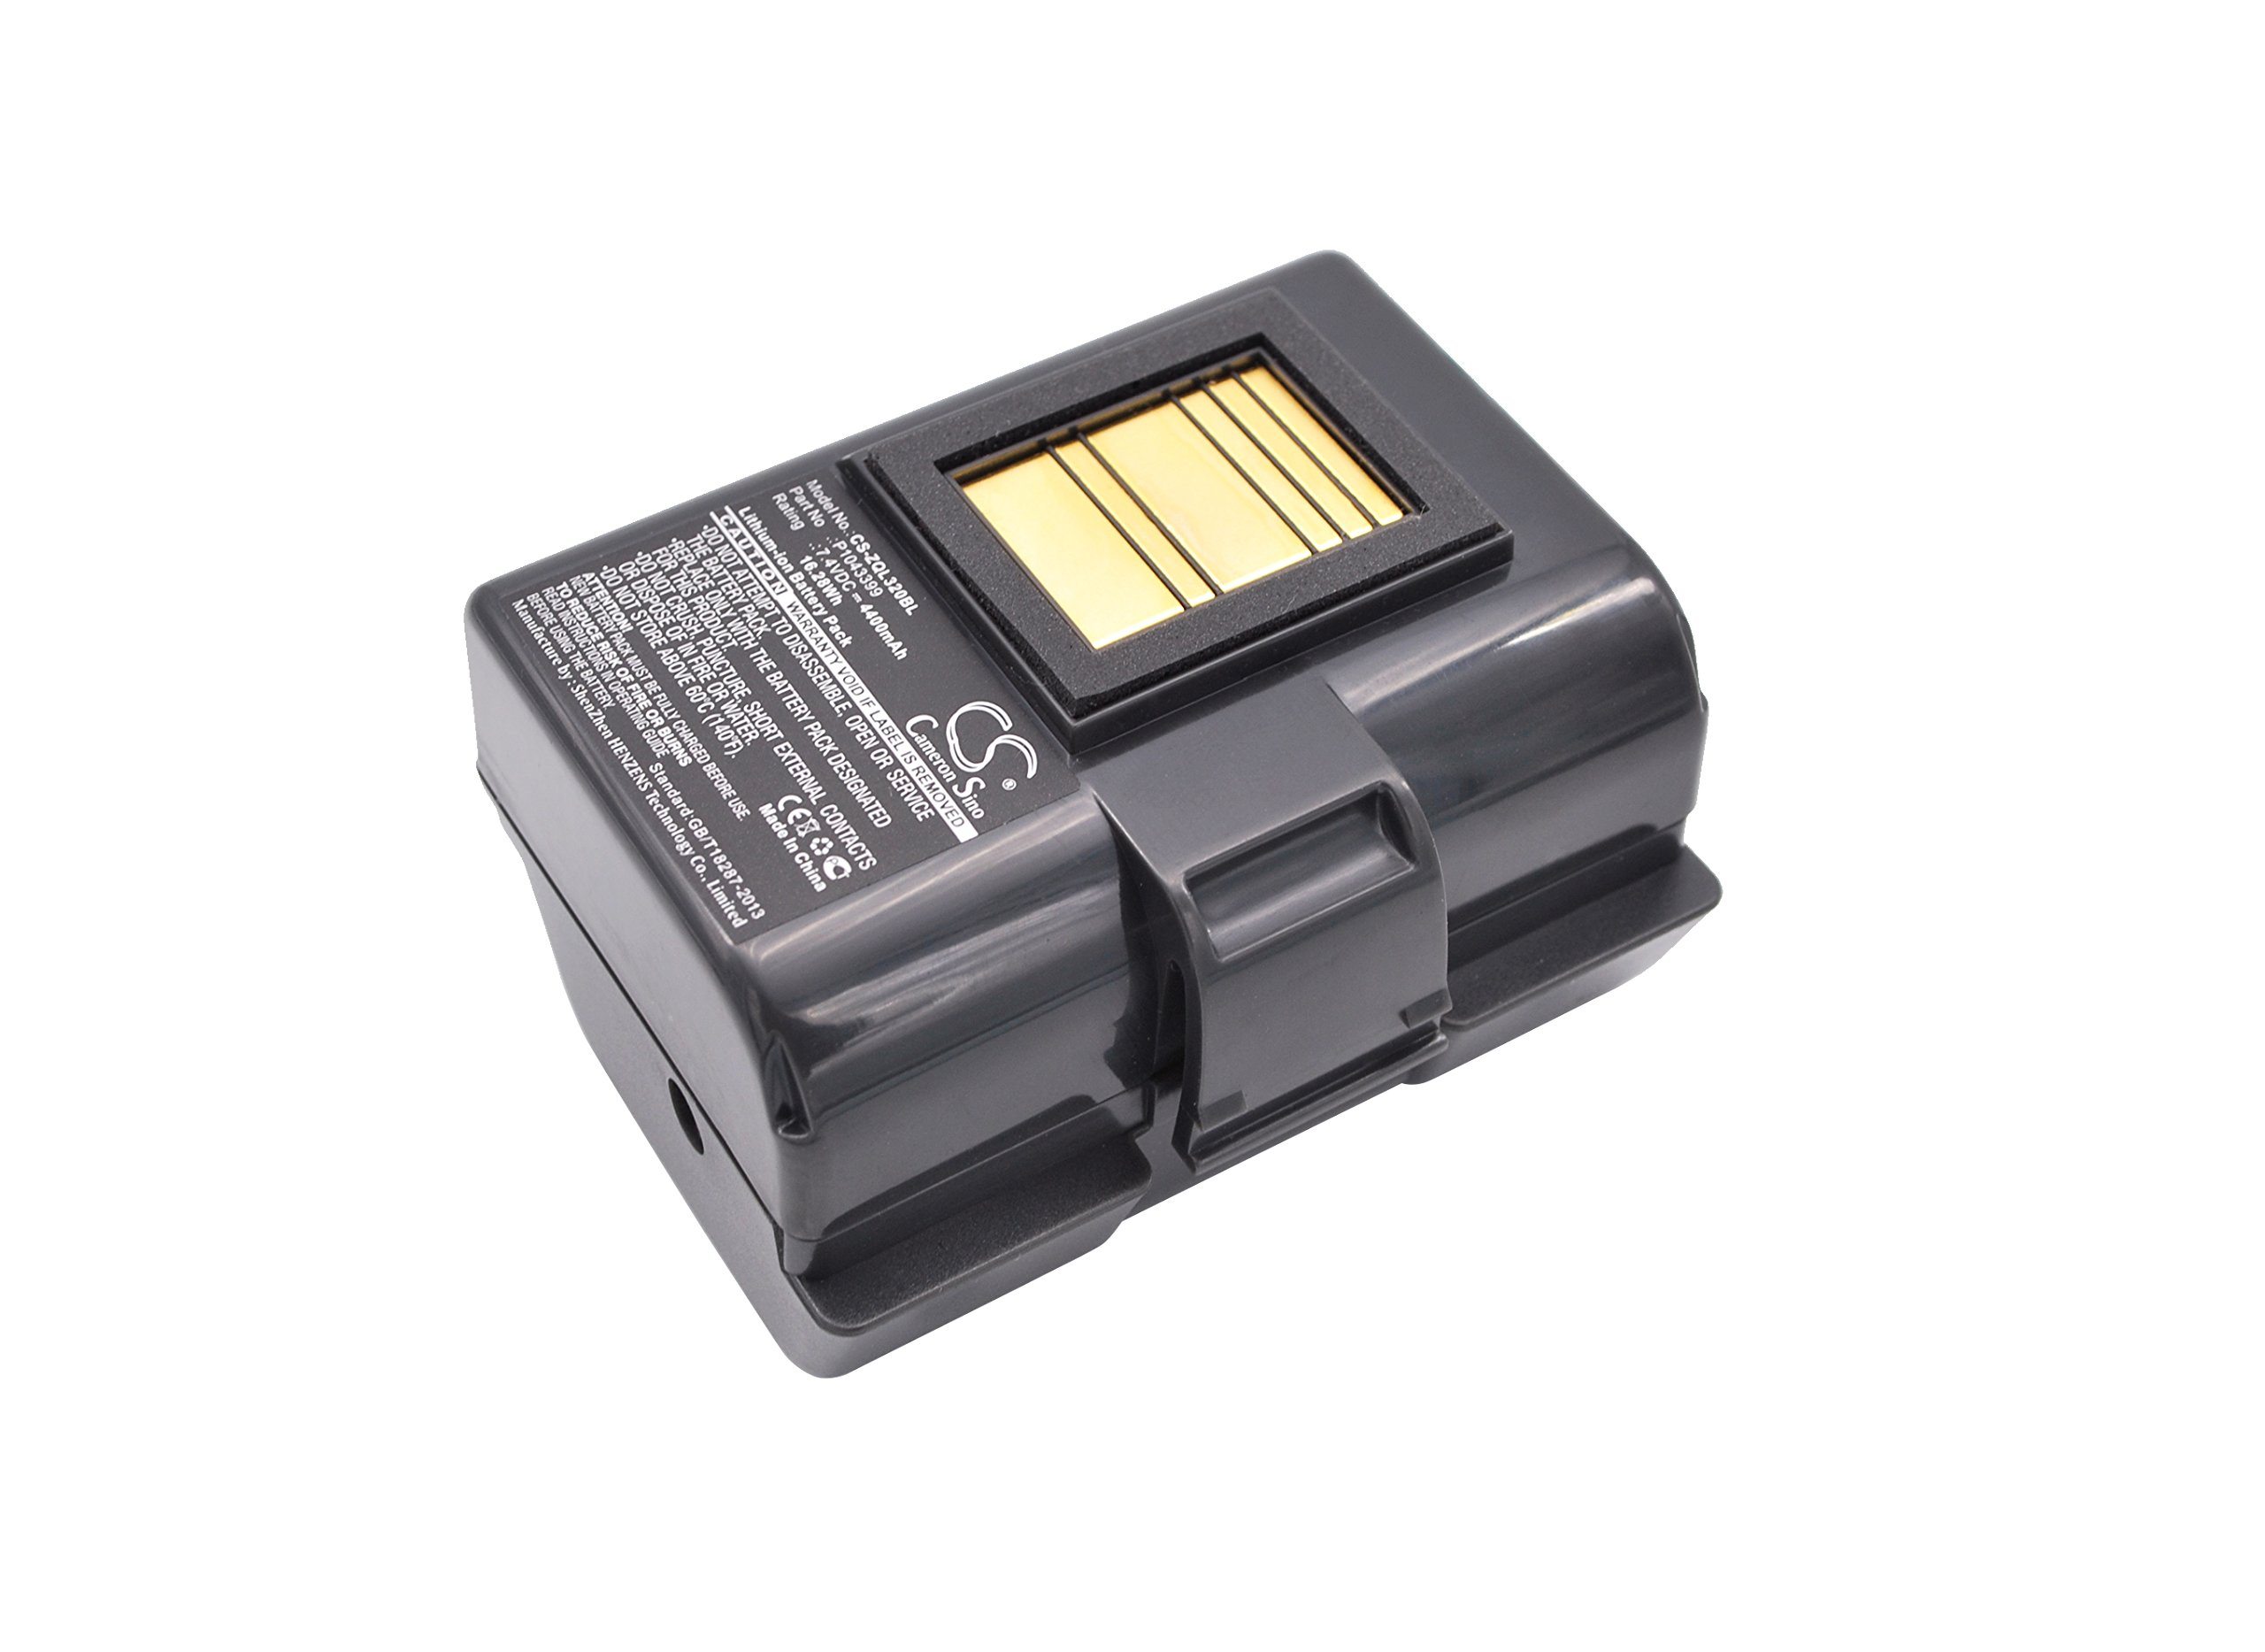 Replacement Battery for Zebra QLN320 QLN220 ZQ520 ZQ500 ZQ510 P1023901 P1023901-LF P1031365-025 by Bomibattery